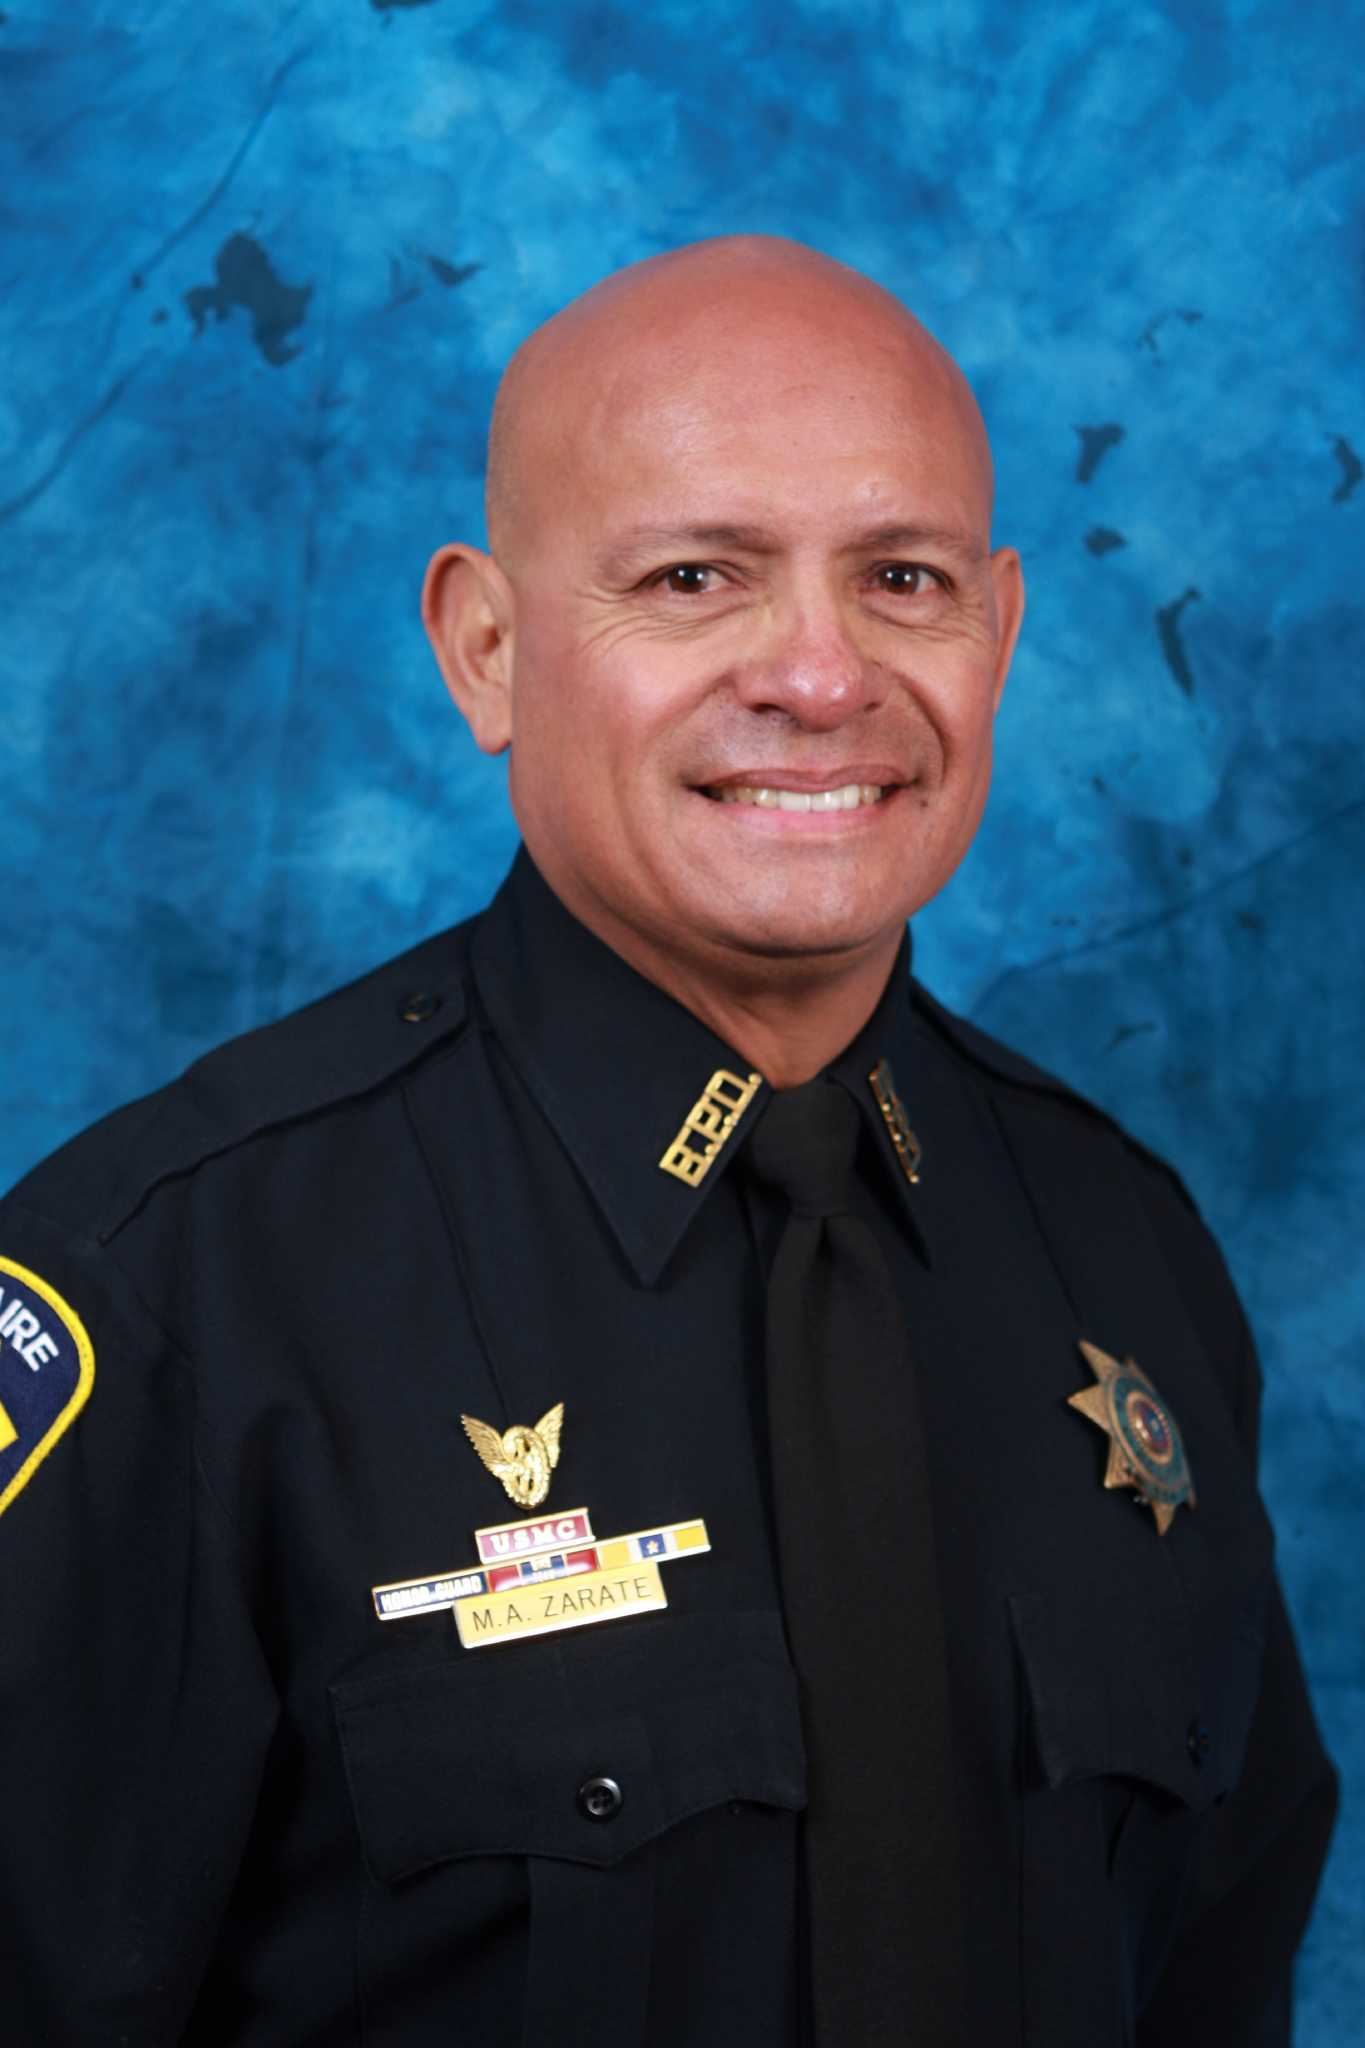 motorcycle crash kills bellaire officer pursuing suspects houston chronicle